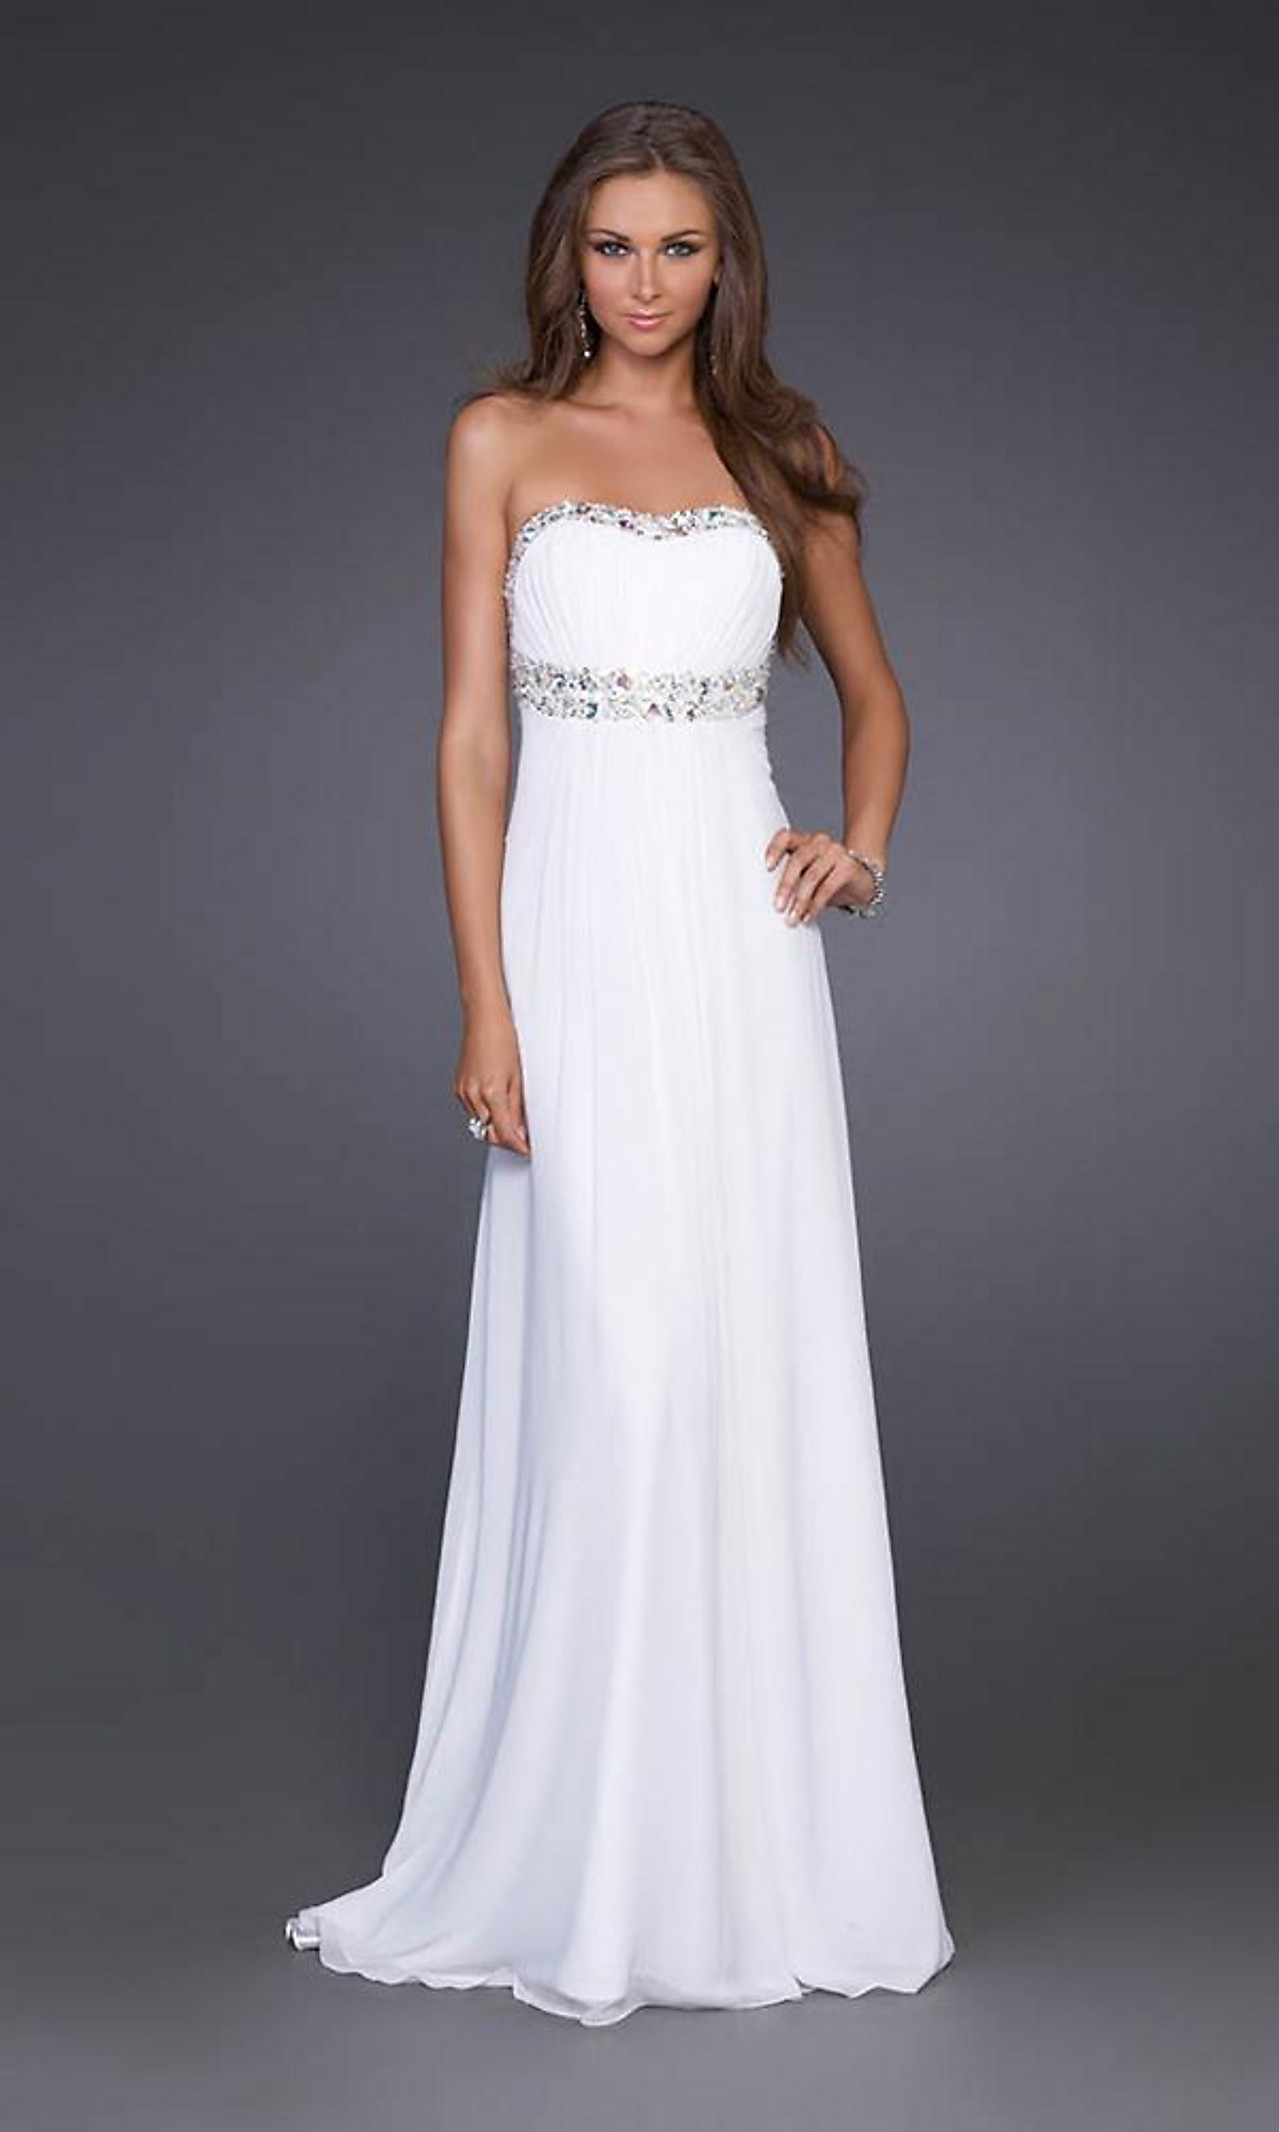 Shop for La Femme dresses and gowns at tiodegwiege.cf Browse strapless, sweetheart and sheath dresses and more. Totally free shipping and returns.